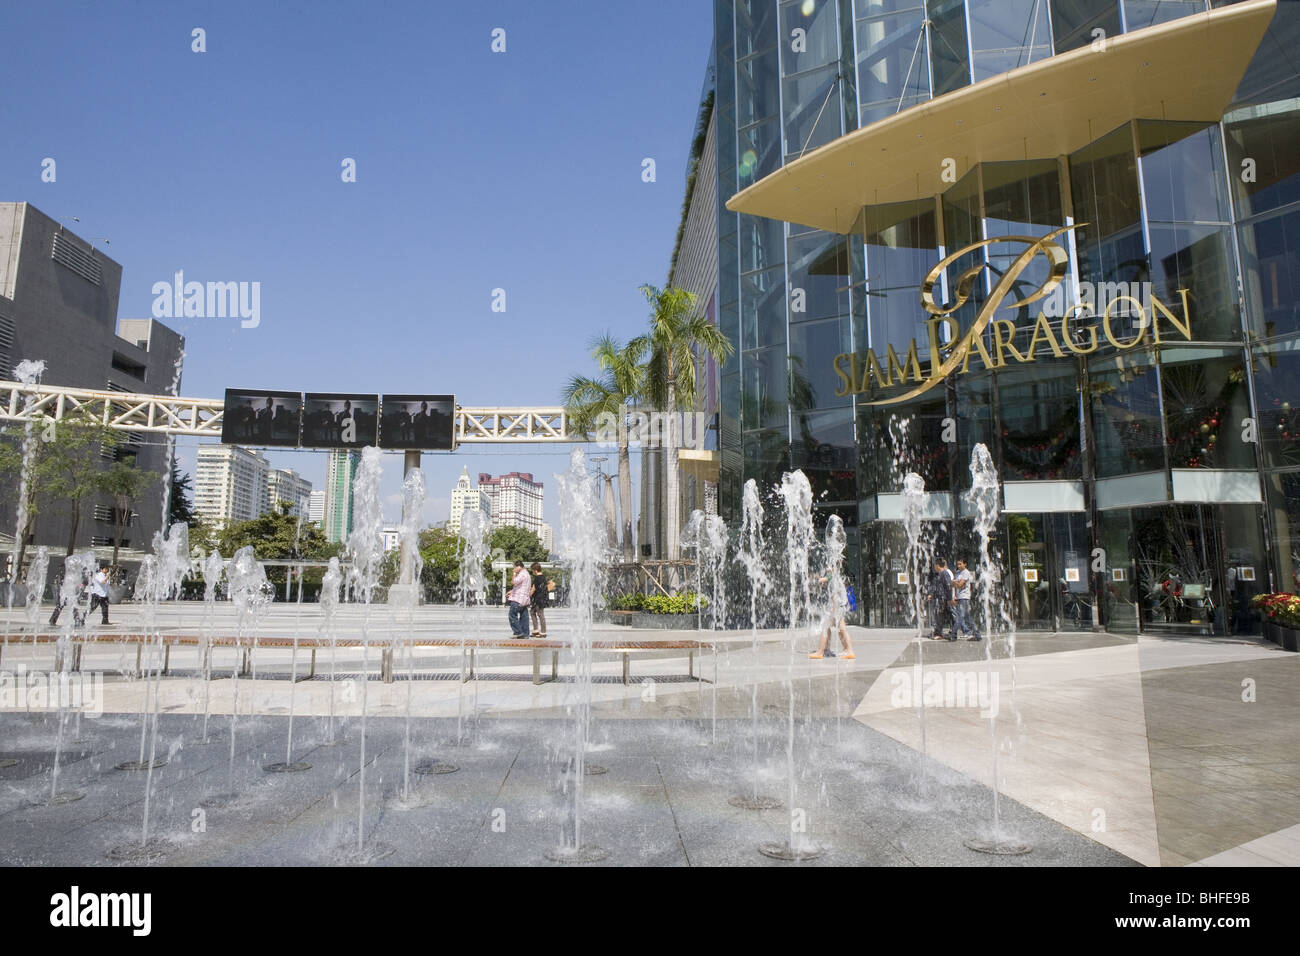 Fountain in front of shopping center Siam Paragon under blue sky, Rama I Road, Pathum Wan, Bangkok, Thailand, Asia - Stock Image